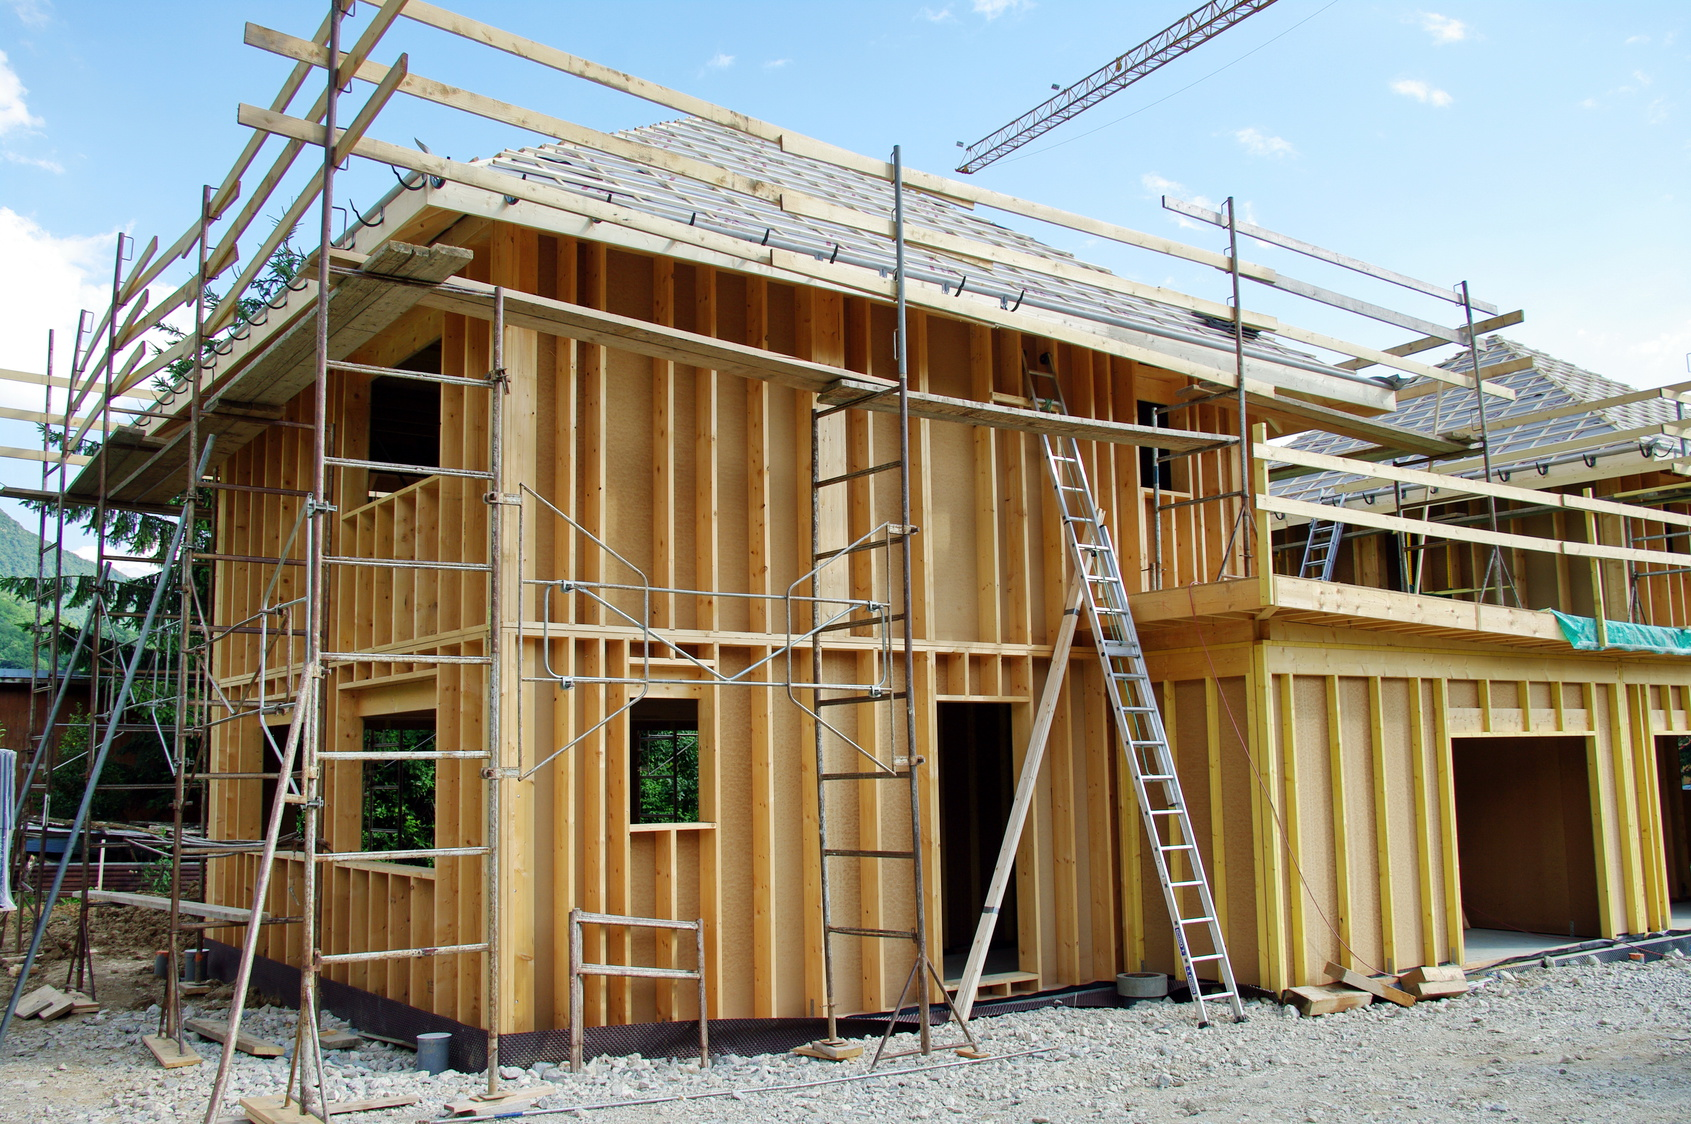 Les tapes de construction d une maison en kit for Construction en bois herault